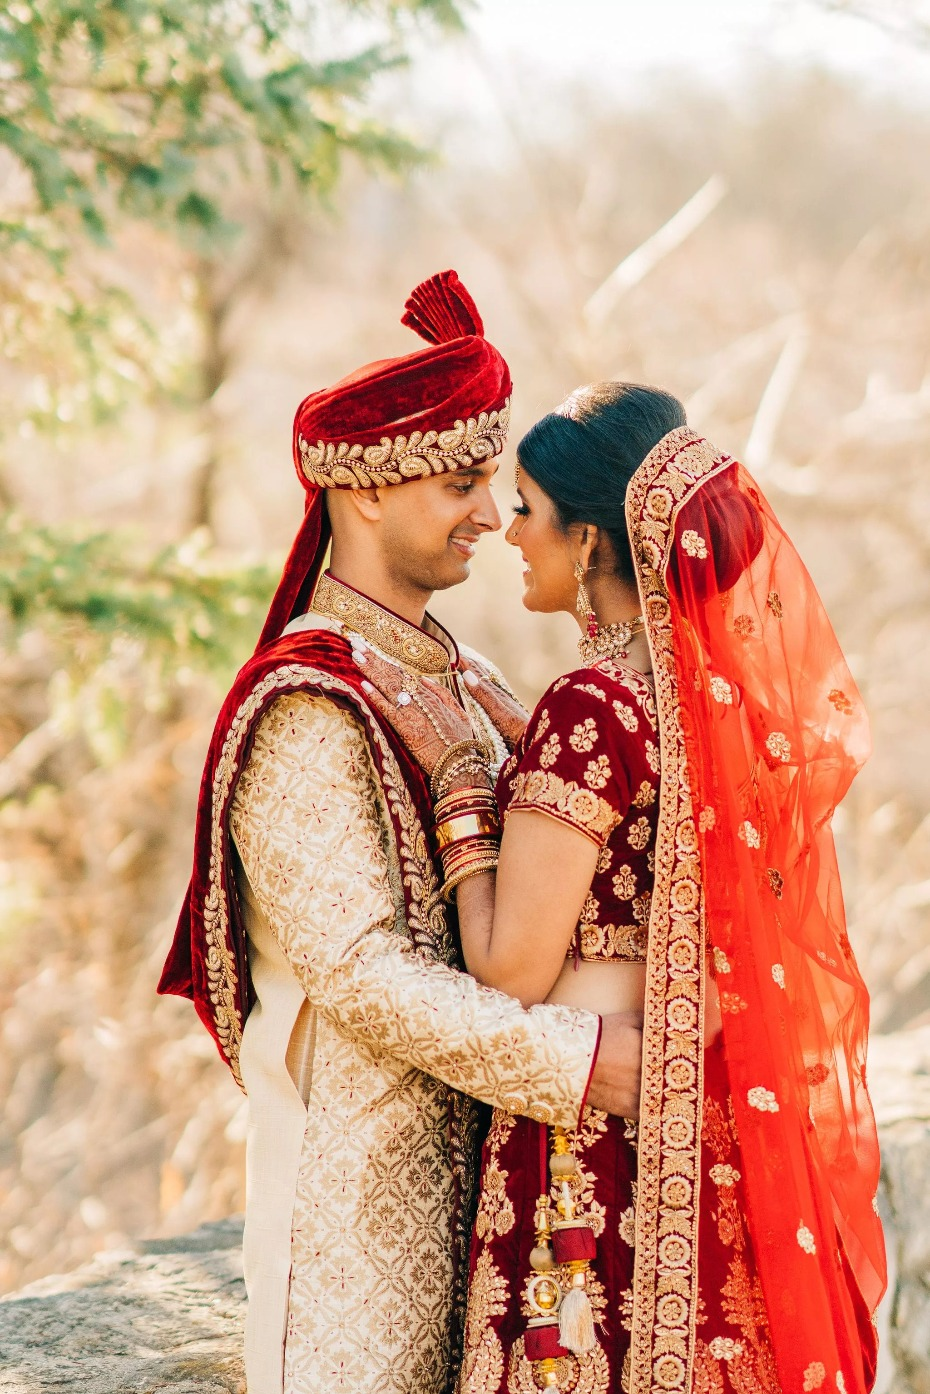 Indian Wedding bride and groom photography ideas